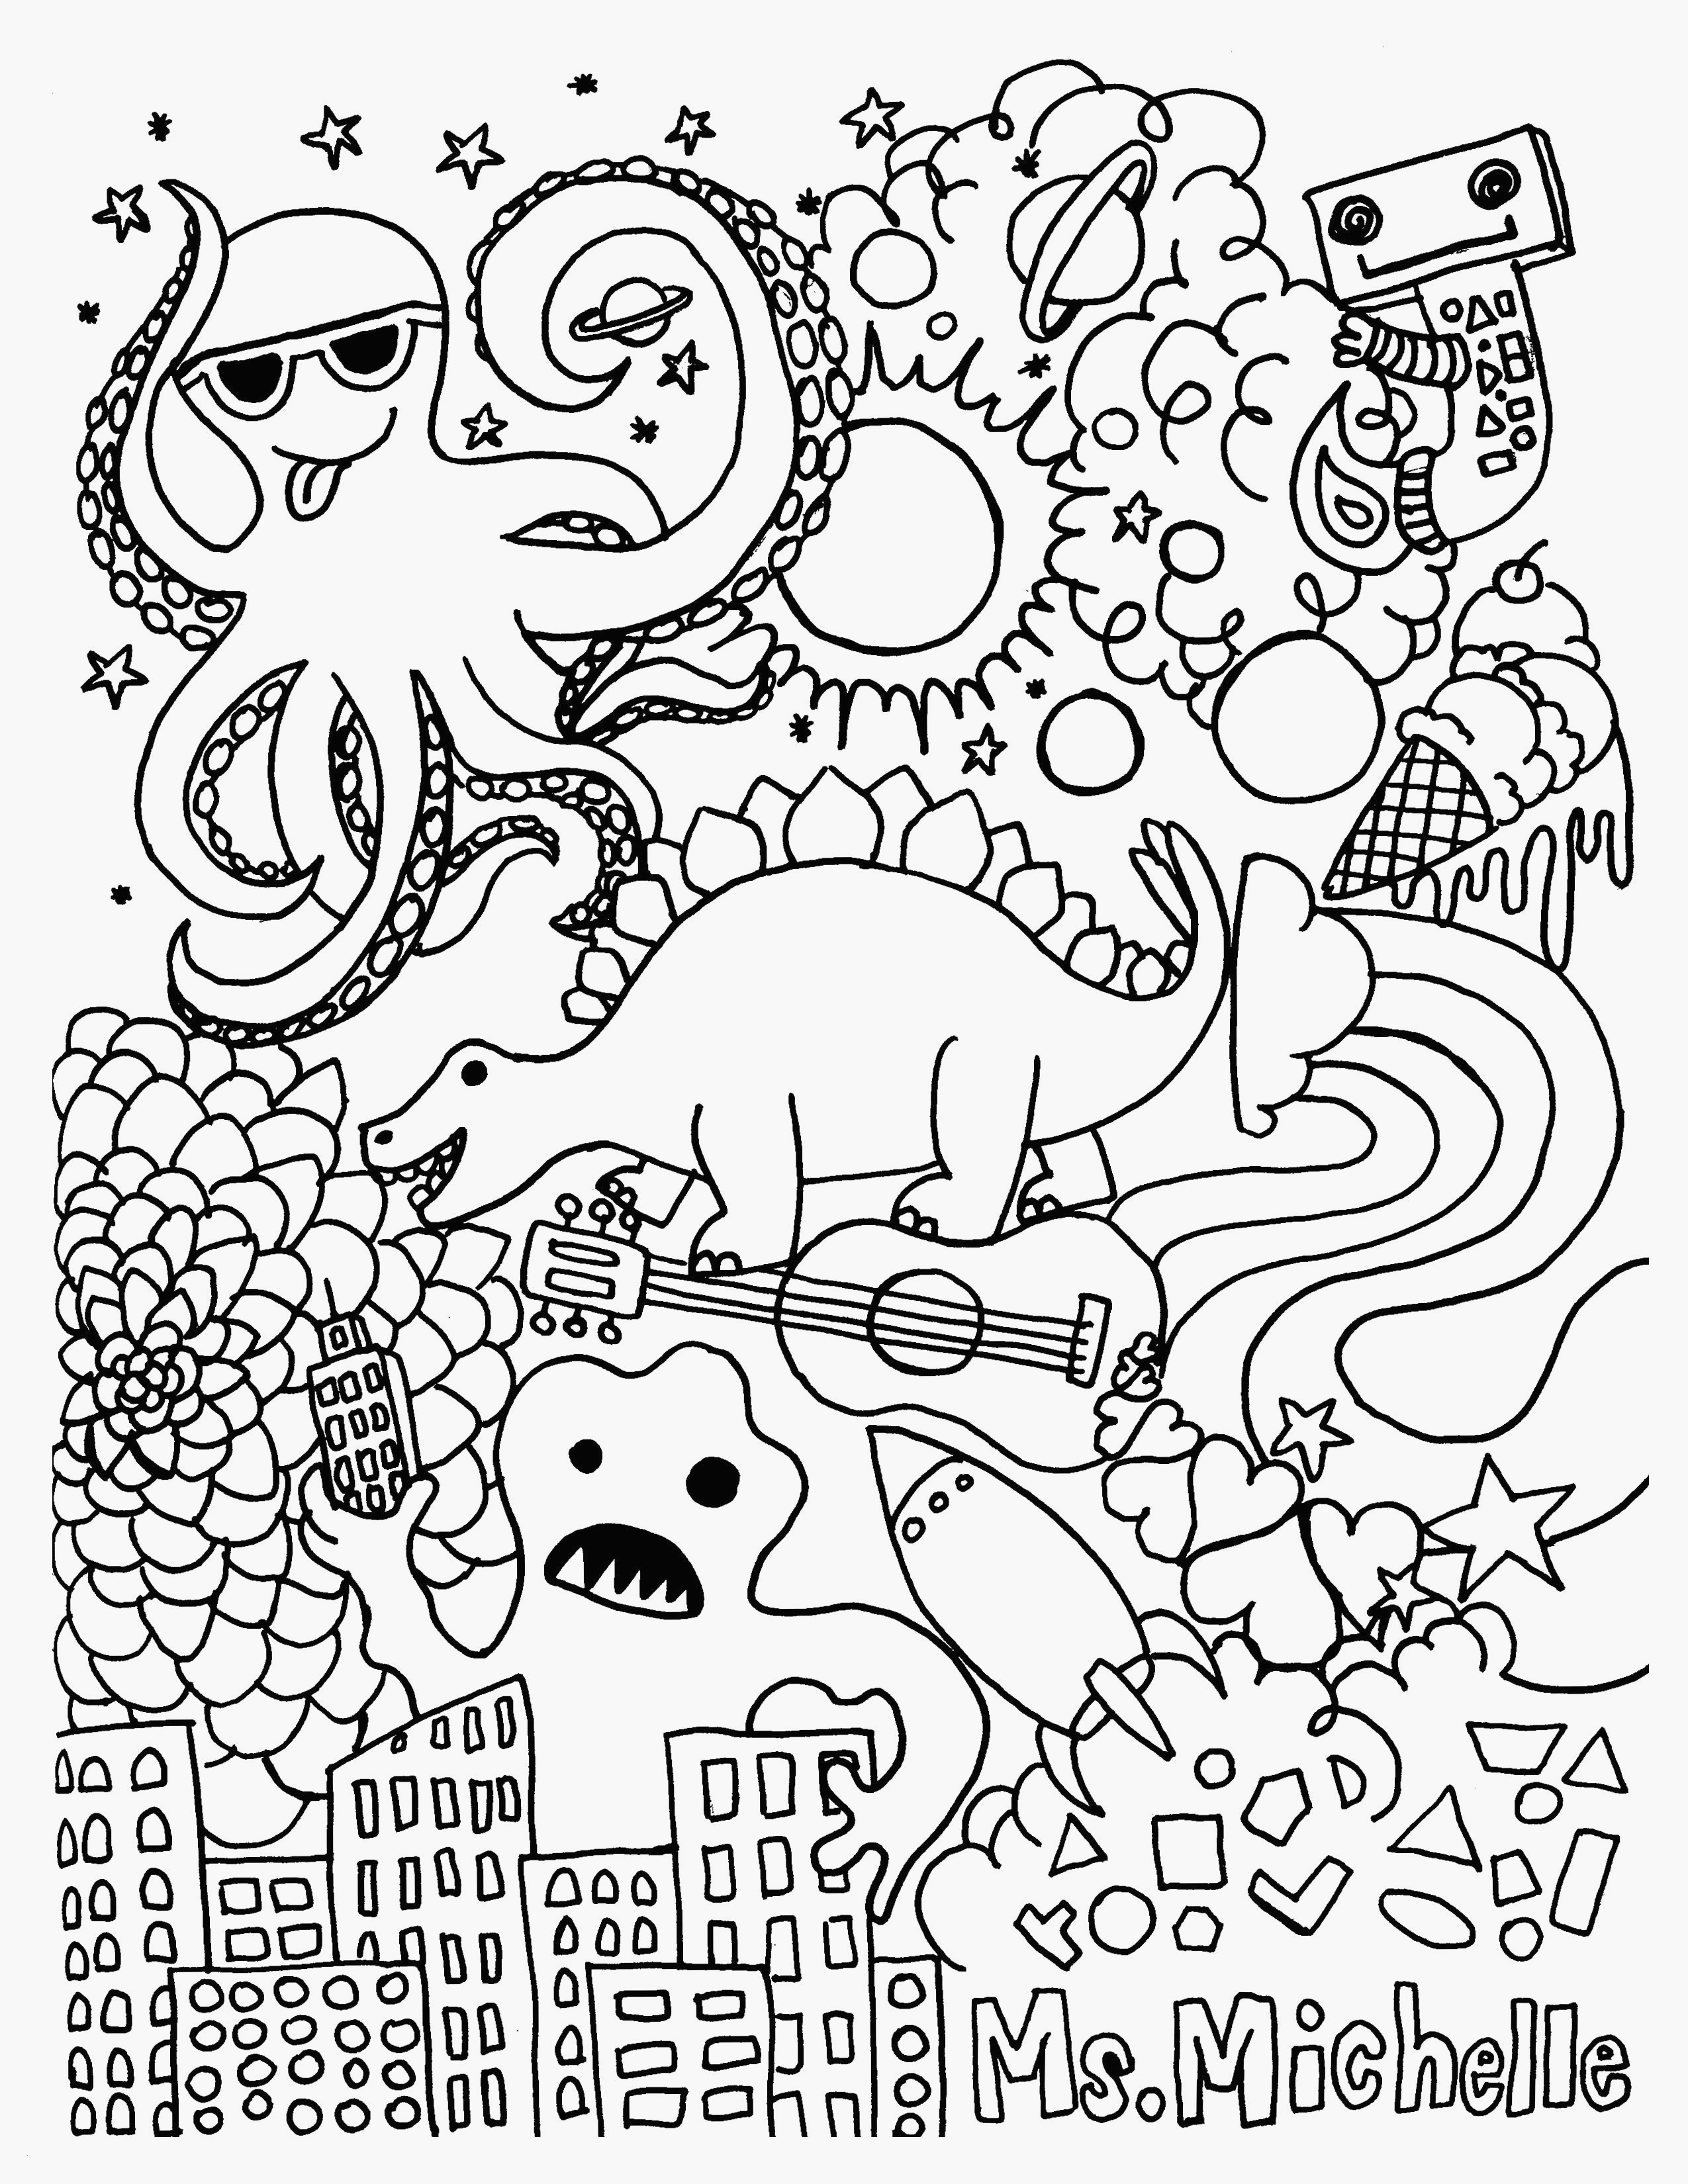 descendants 2 coloring pages medusa coloring pages best easy inspirational printable coloring pages luxury inspirational